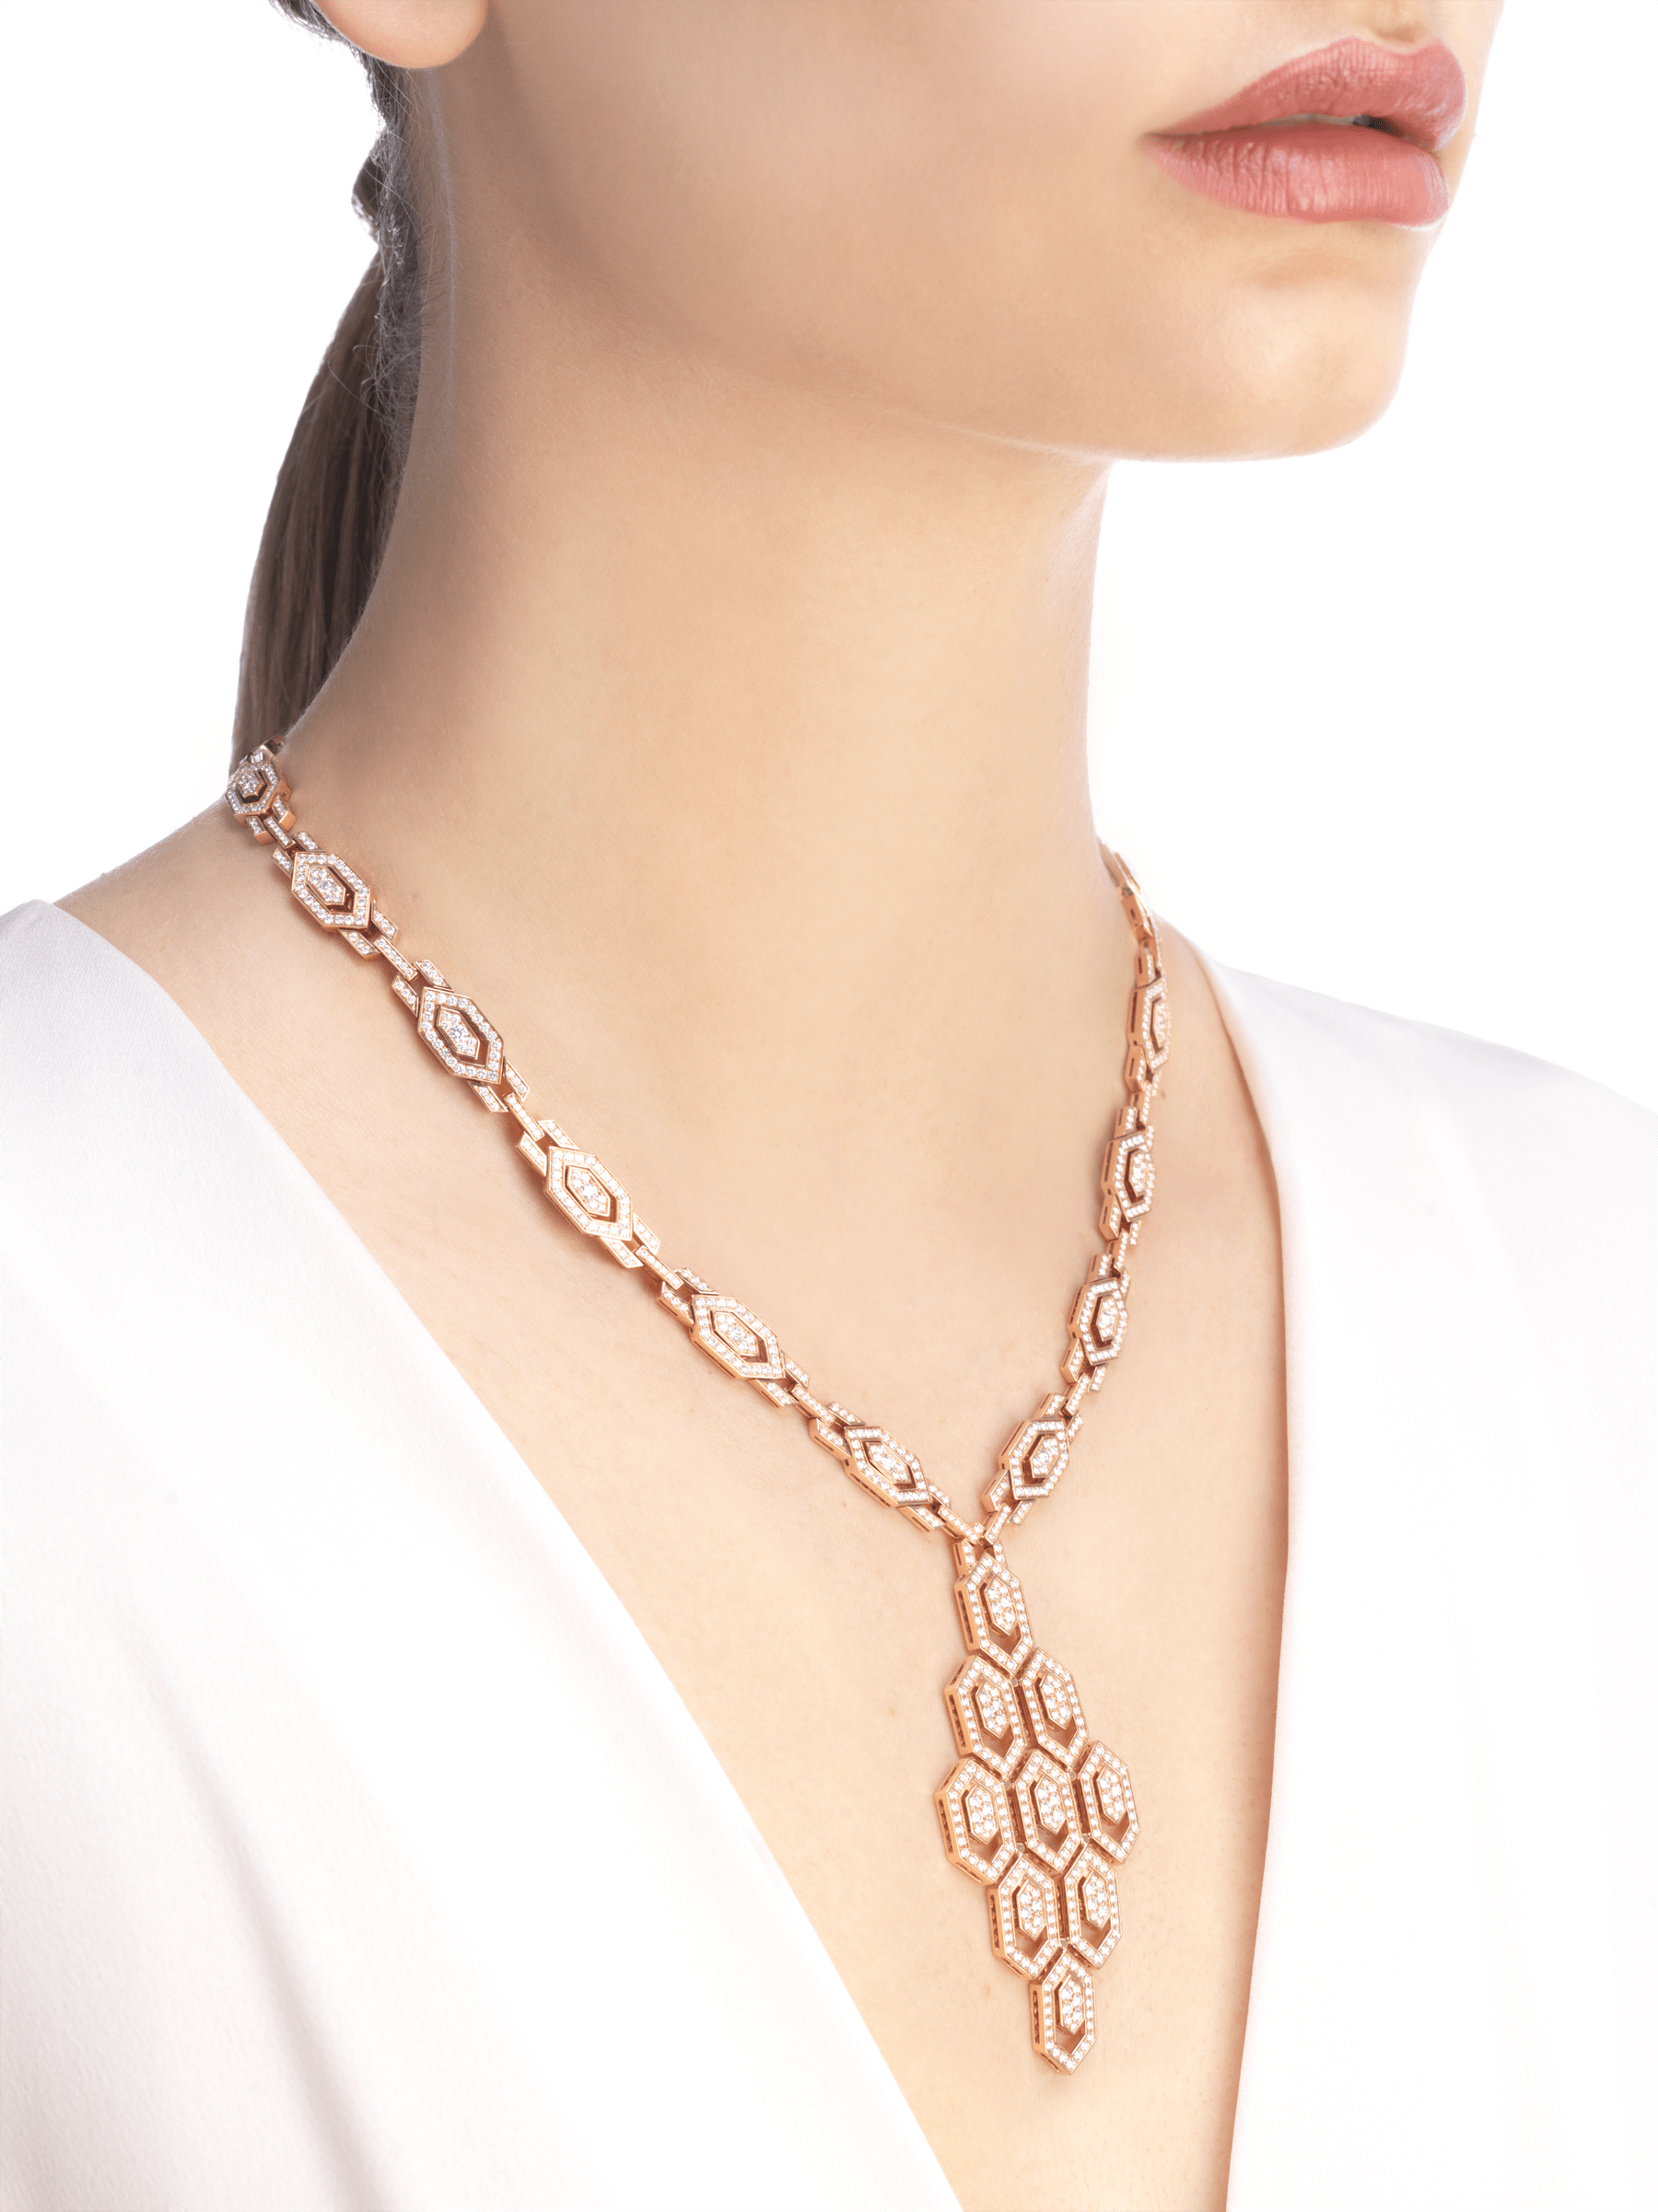 Serpenti 18 kt rose gold necklace set with pavé diamonds both on the chain and pendant. 356194 image 4